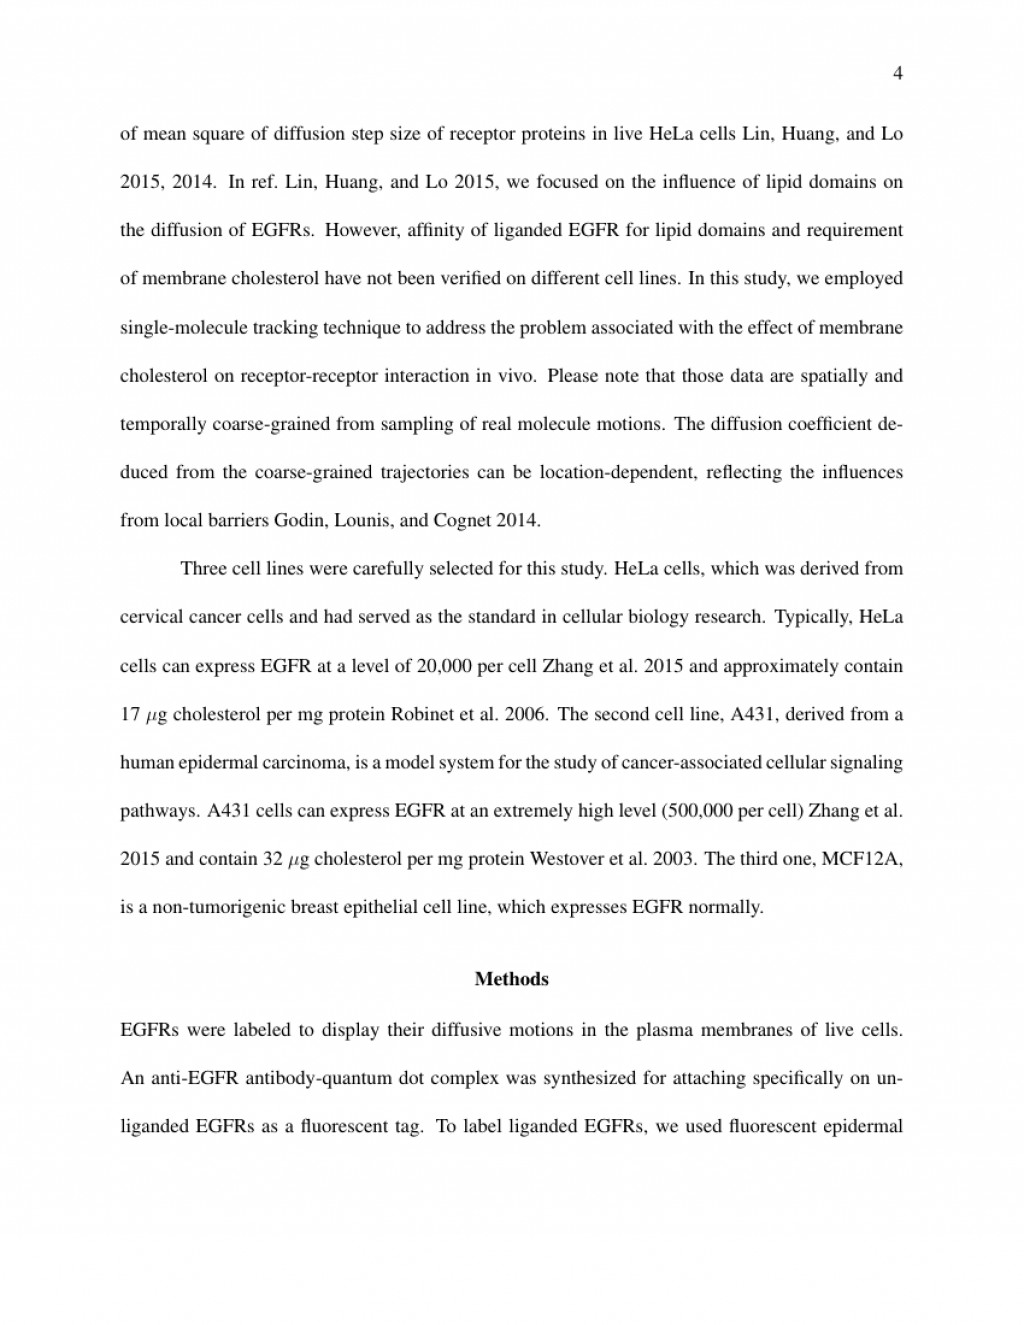 003 Format Of Research Paper Article Astounding A Introduction Example Using Apa Style Mla With Title Page Large